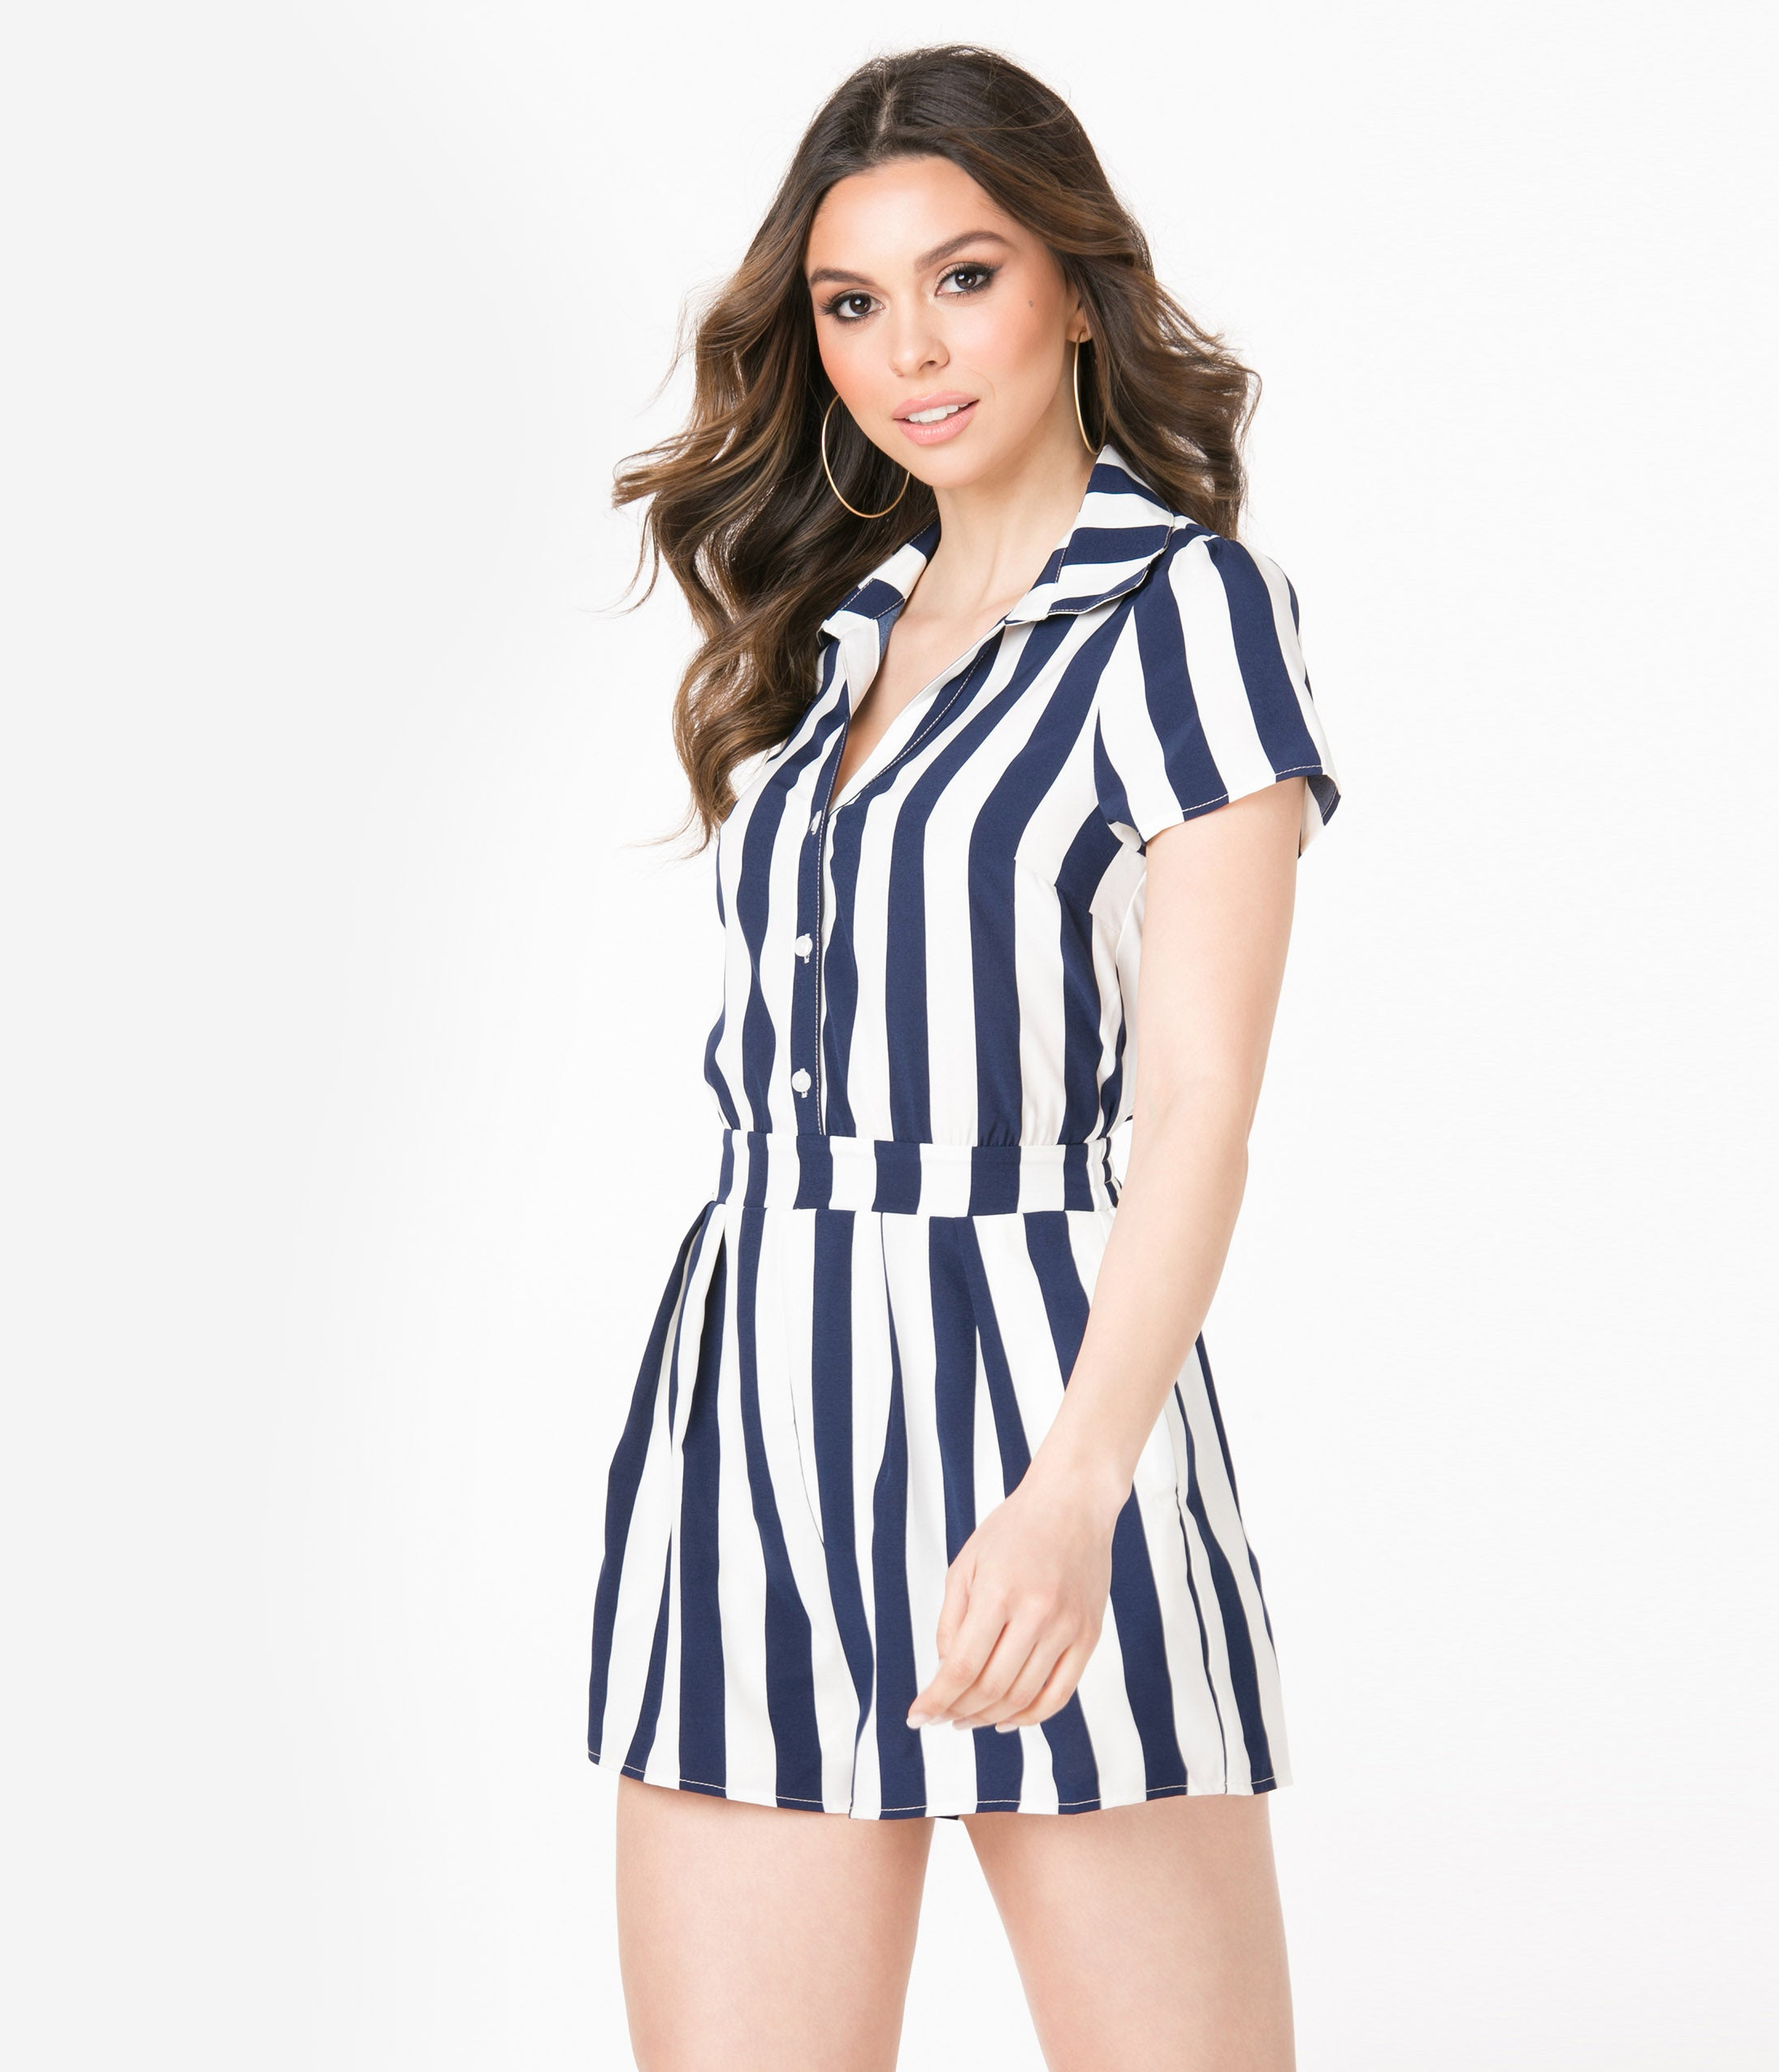 Vintage Rompers, Playsuits | Retro, Pin Up, Rockabilly Playsuits Retro Style Navy Blue  Ivory Stripe Romper $48.00 AT vintagedancer.com